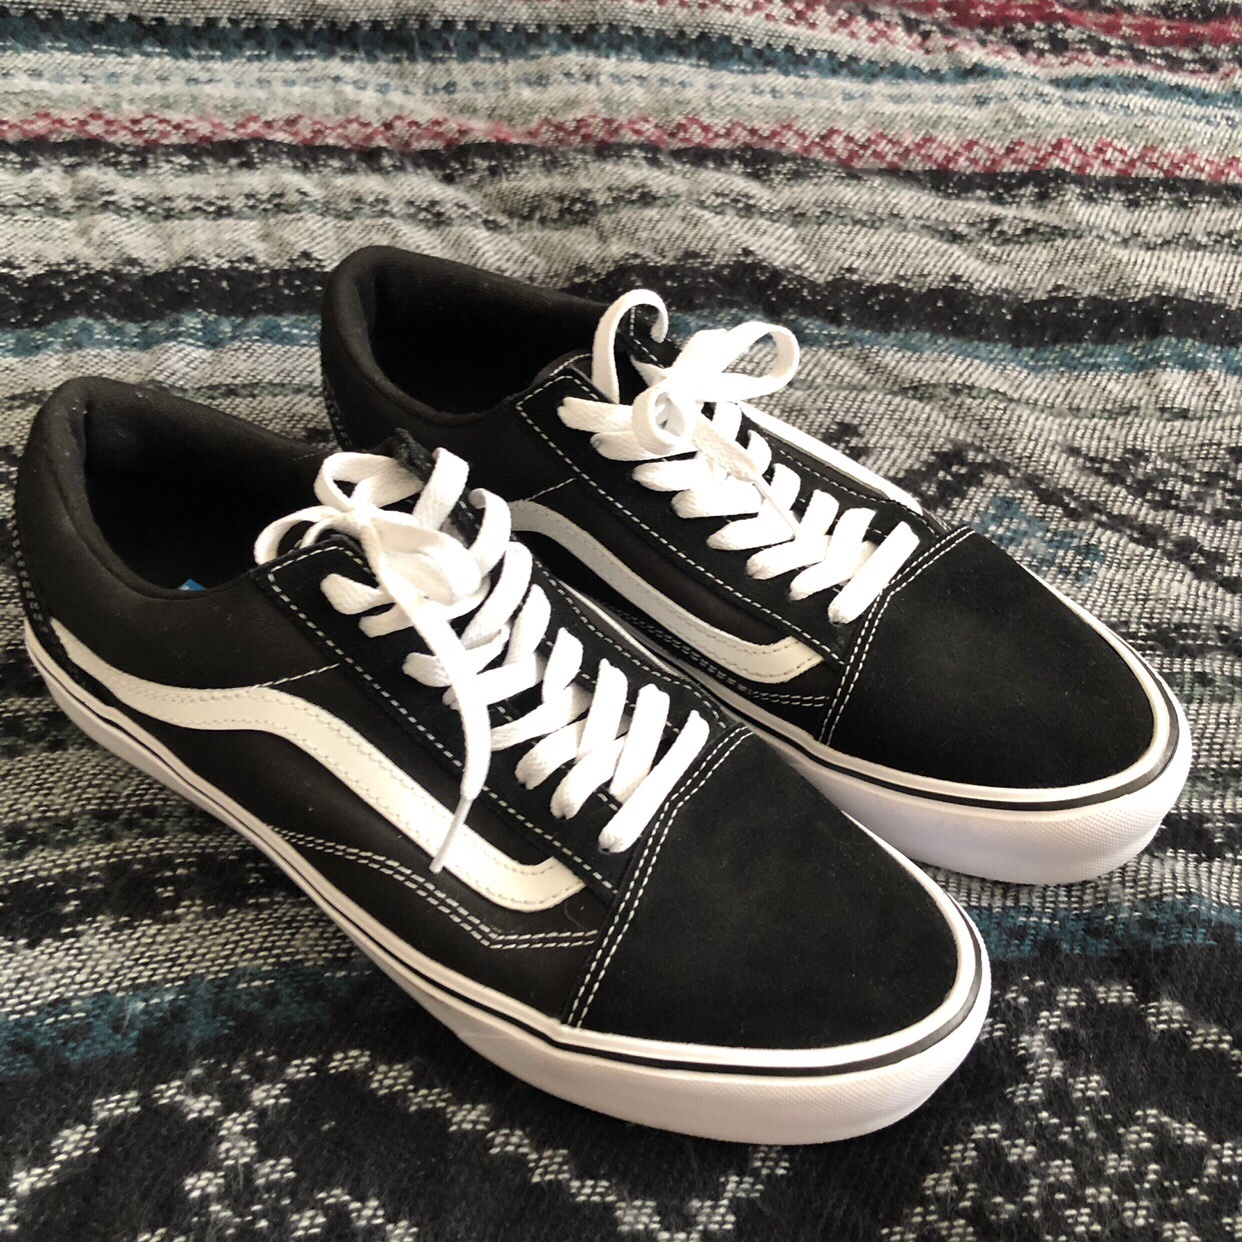 Black Vans UltraCush Lite Women's